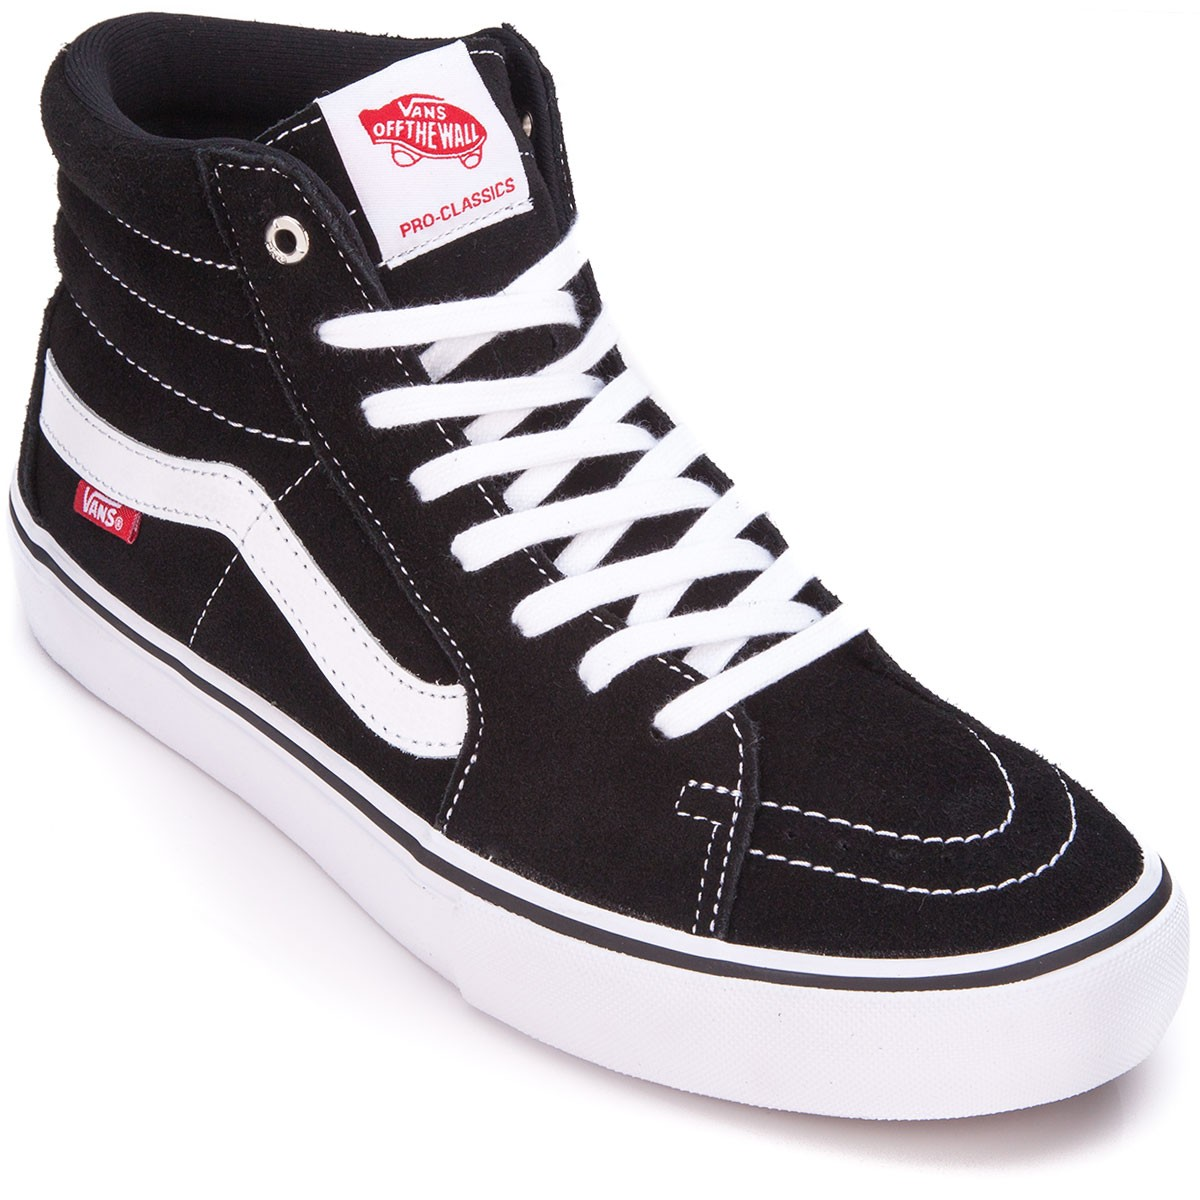 vans sk8 hi pro shoes. Black Bedroom Furniture Sets. Home Design Ideas